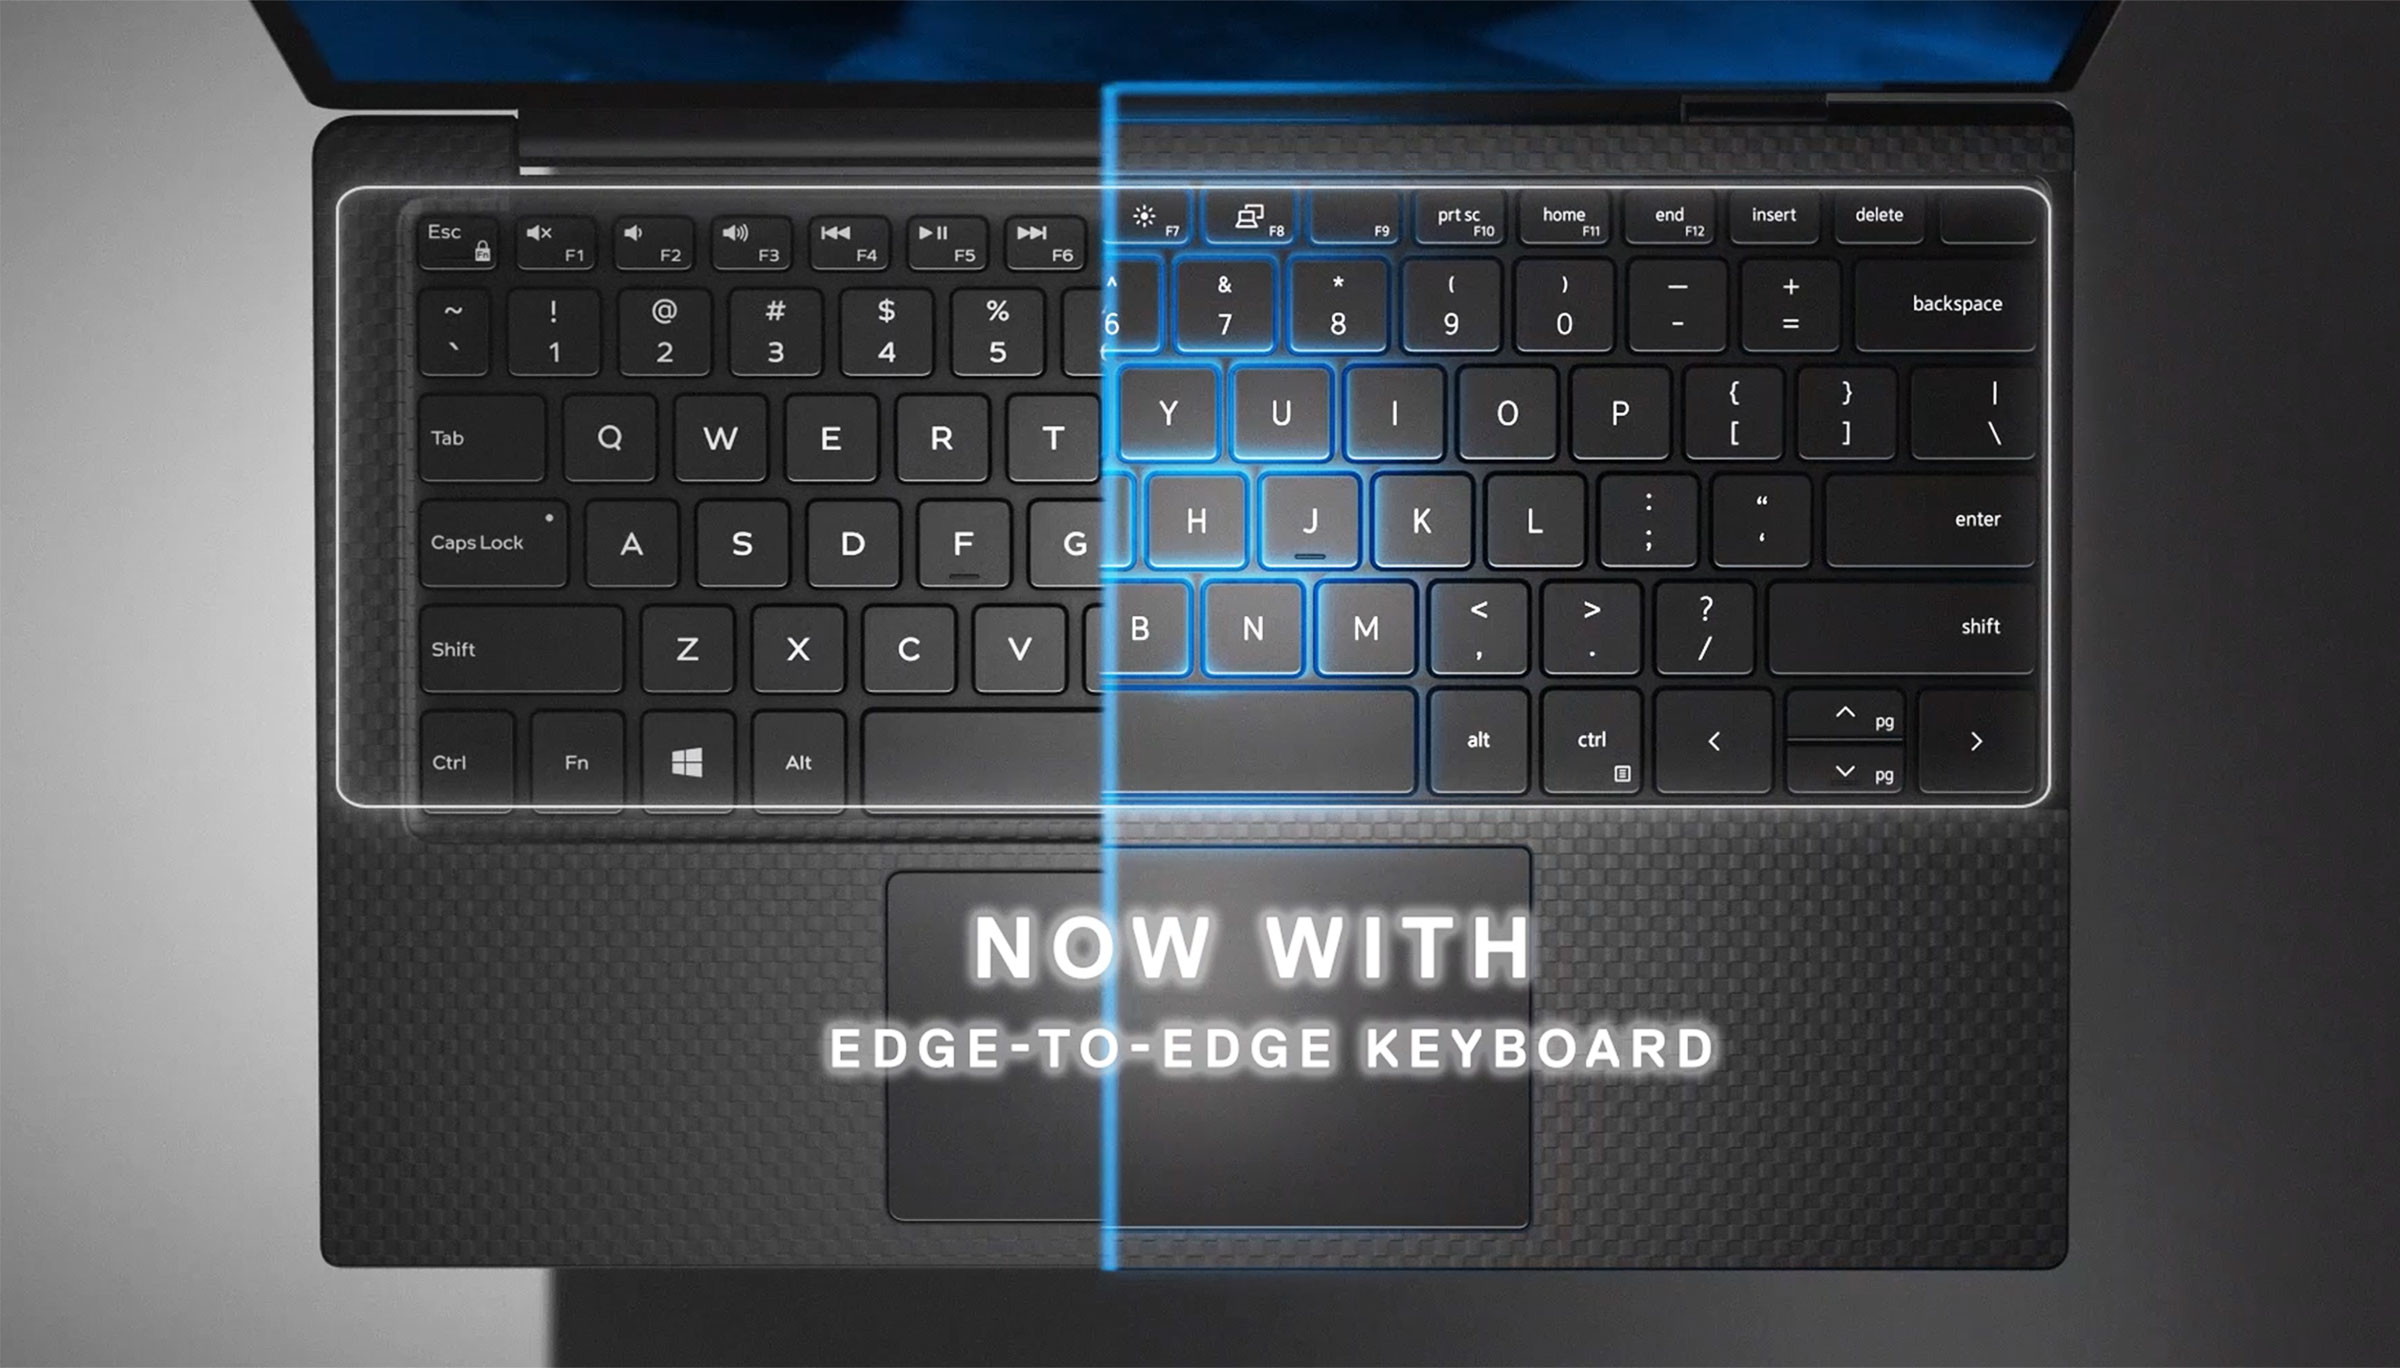 Dell XPS 13 9300 keyboard redesign